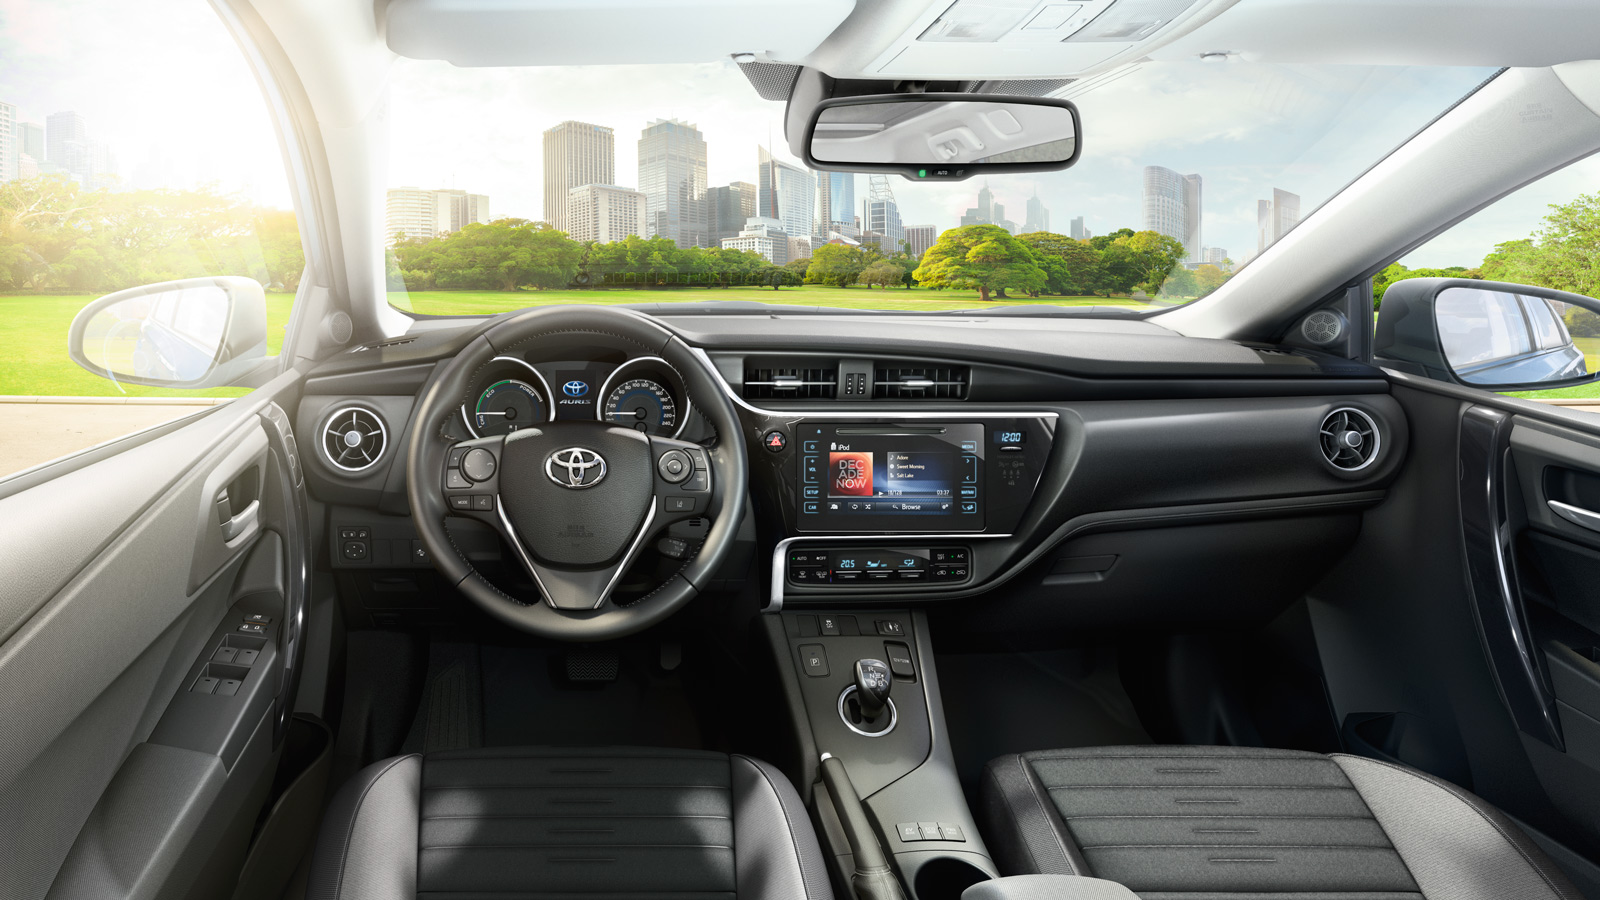 Toyota auris garage e mattm ller ag for Interieur sport